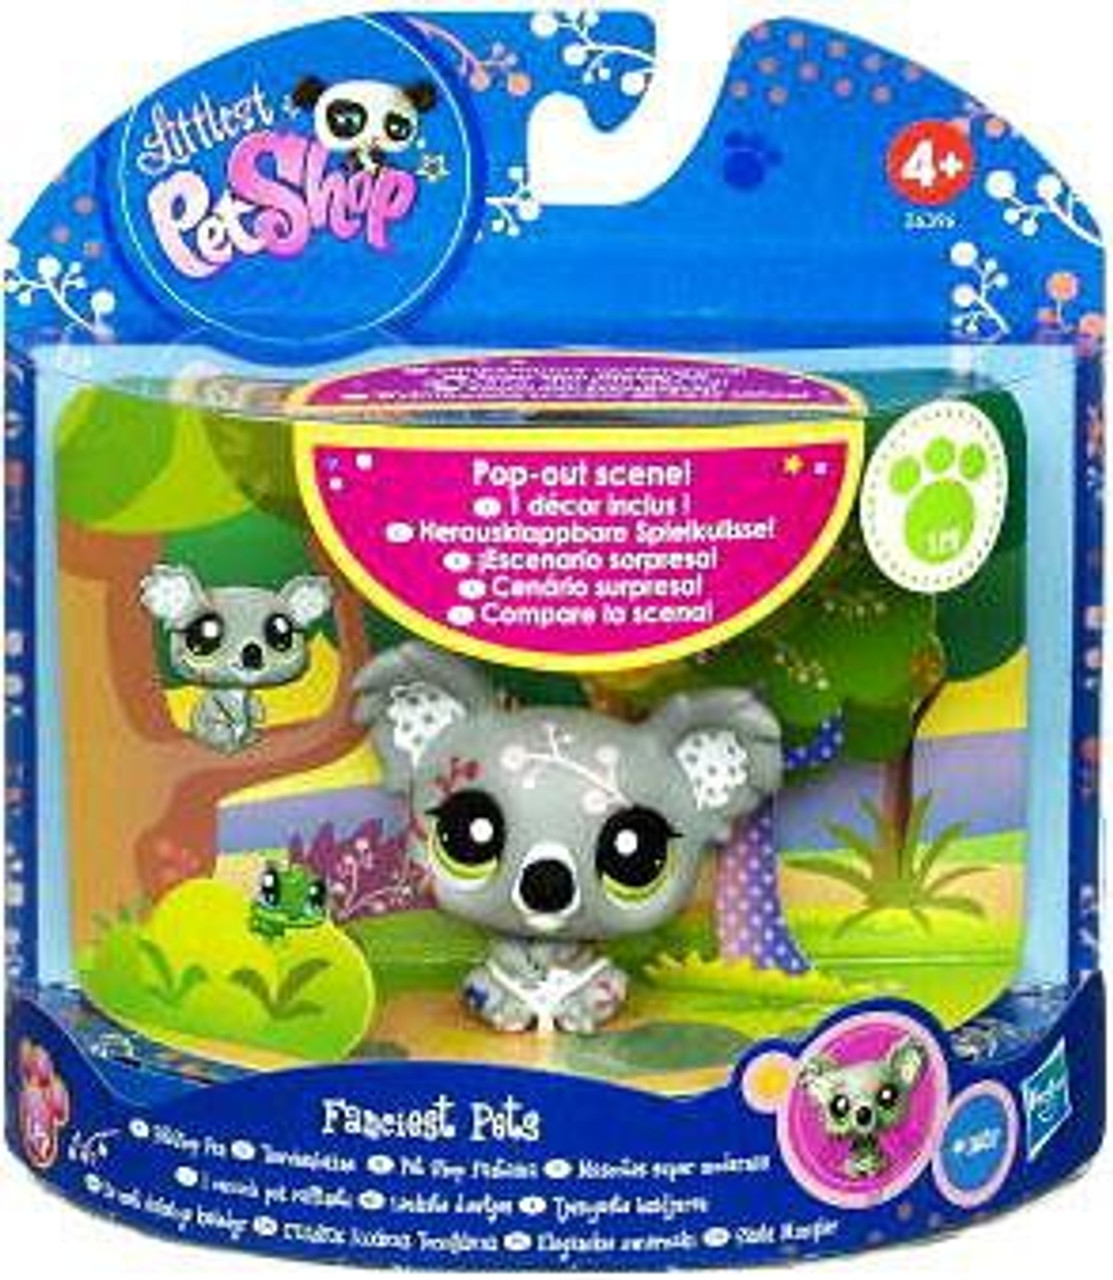 Littlest Pet Shop Fanciest Pets Series 1 Koala Figure